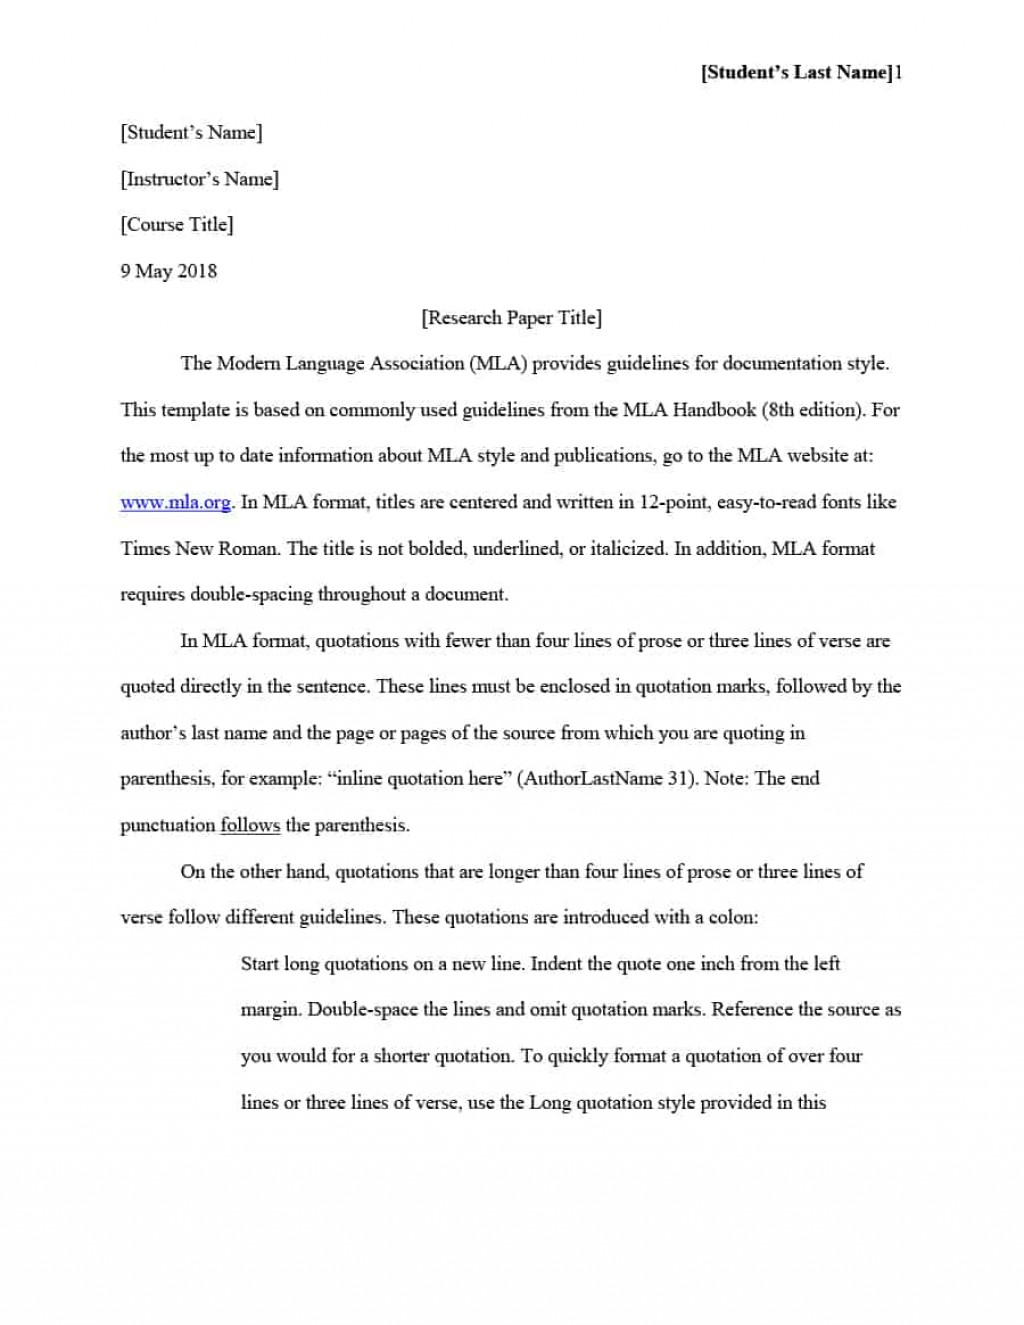 003 Research Paper Mla Style Format Template Fantastic Sample Owl Example Large